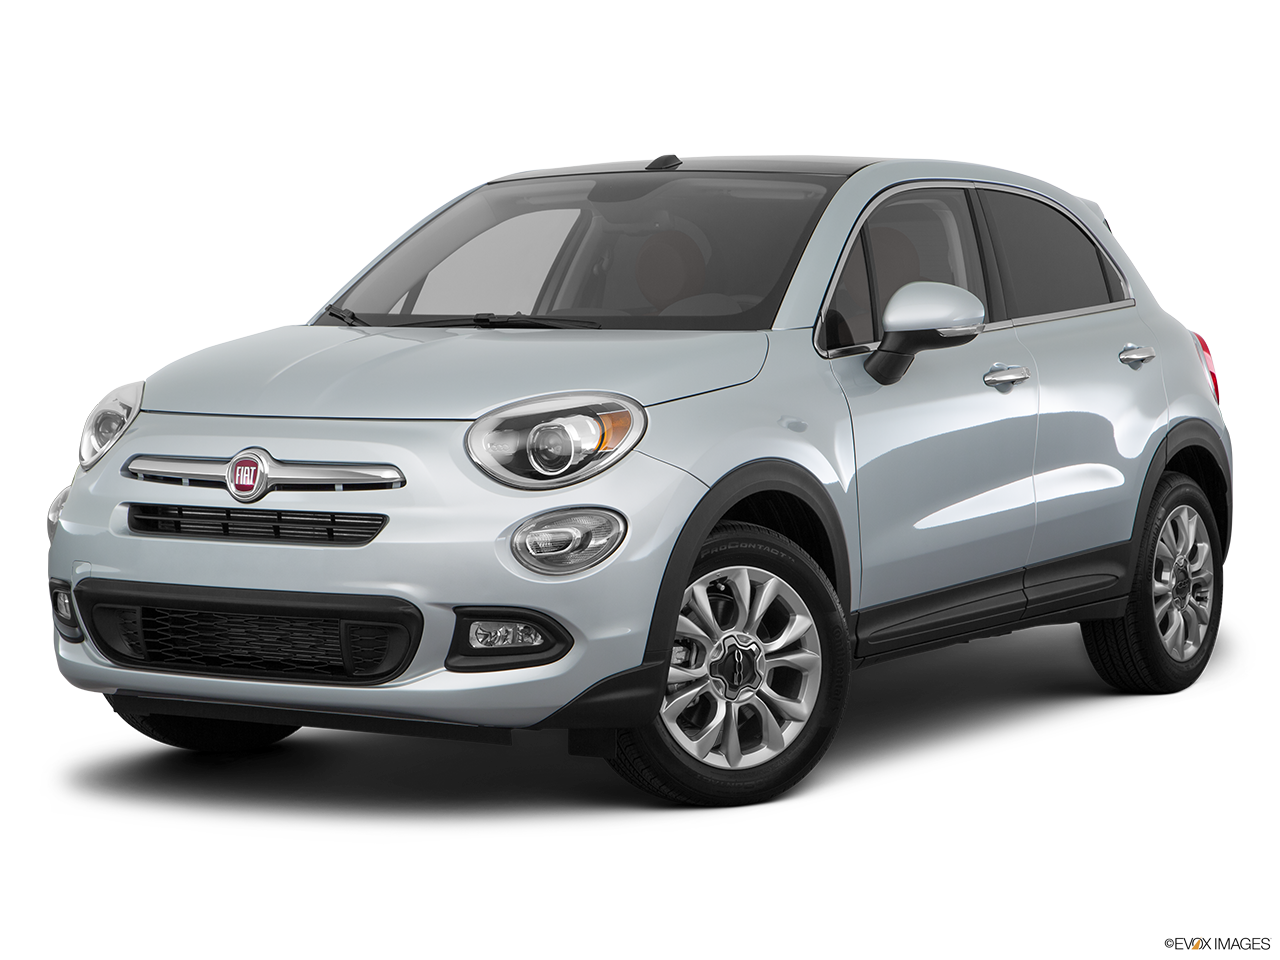 Test Drive A 2017 Fiat 500X at FIAT of Birmingham in Birmingham